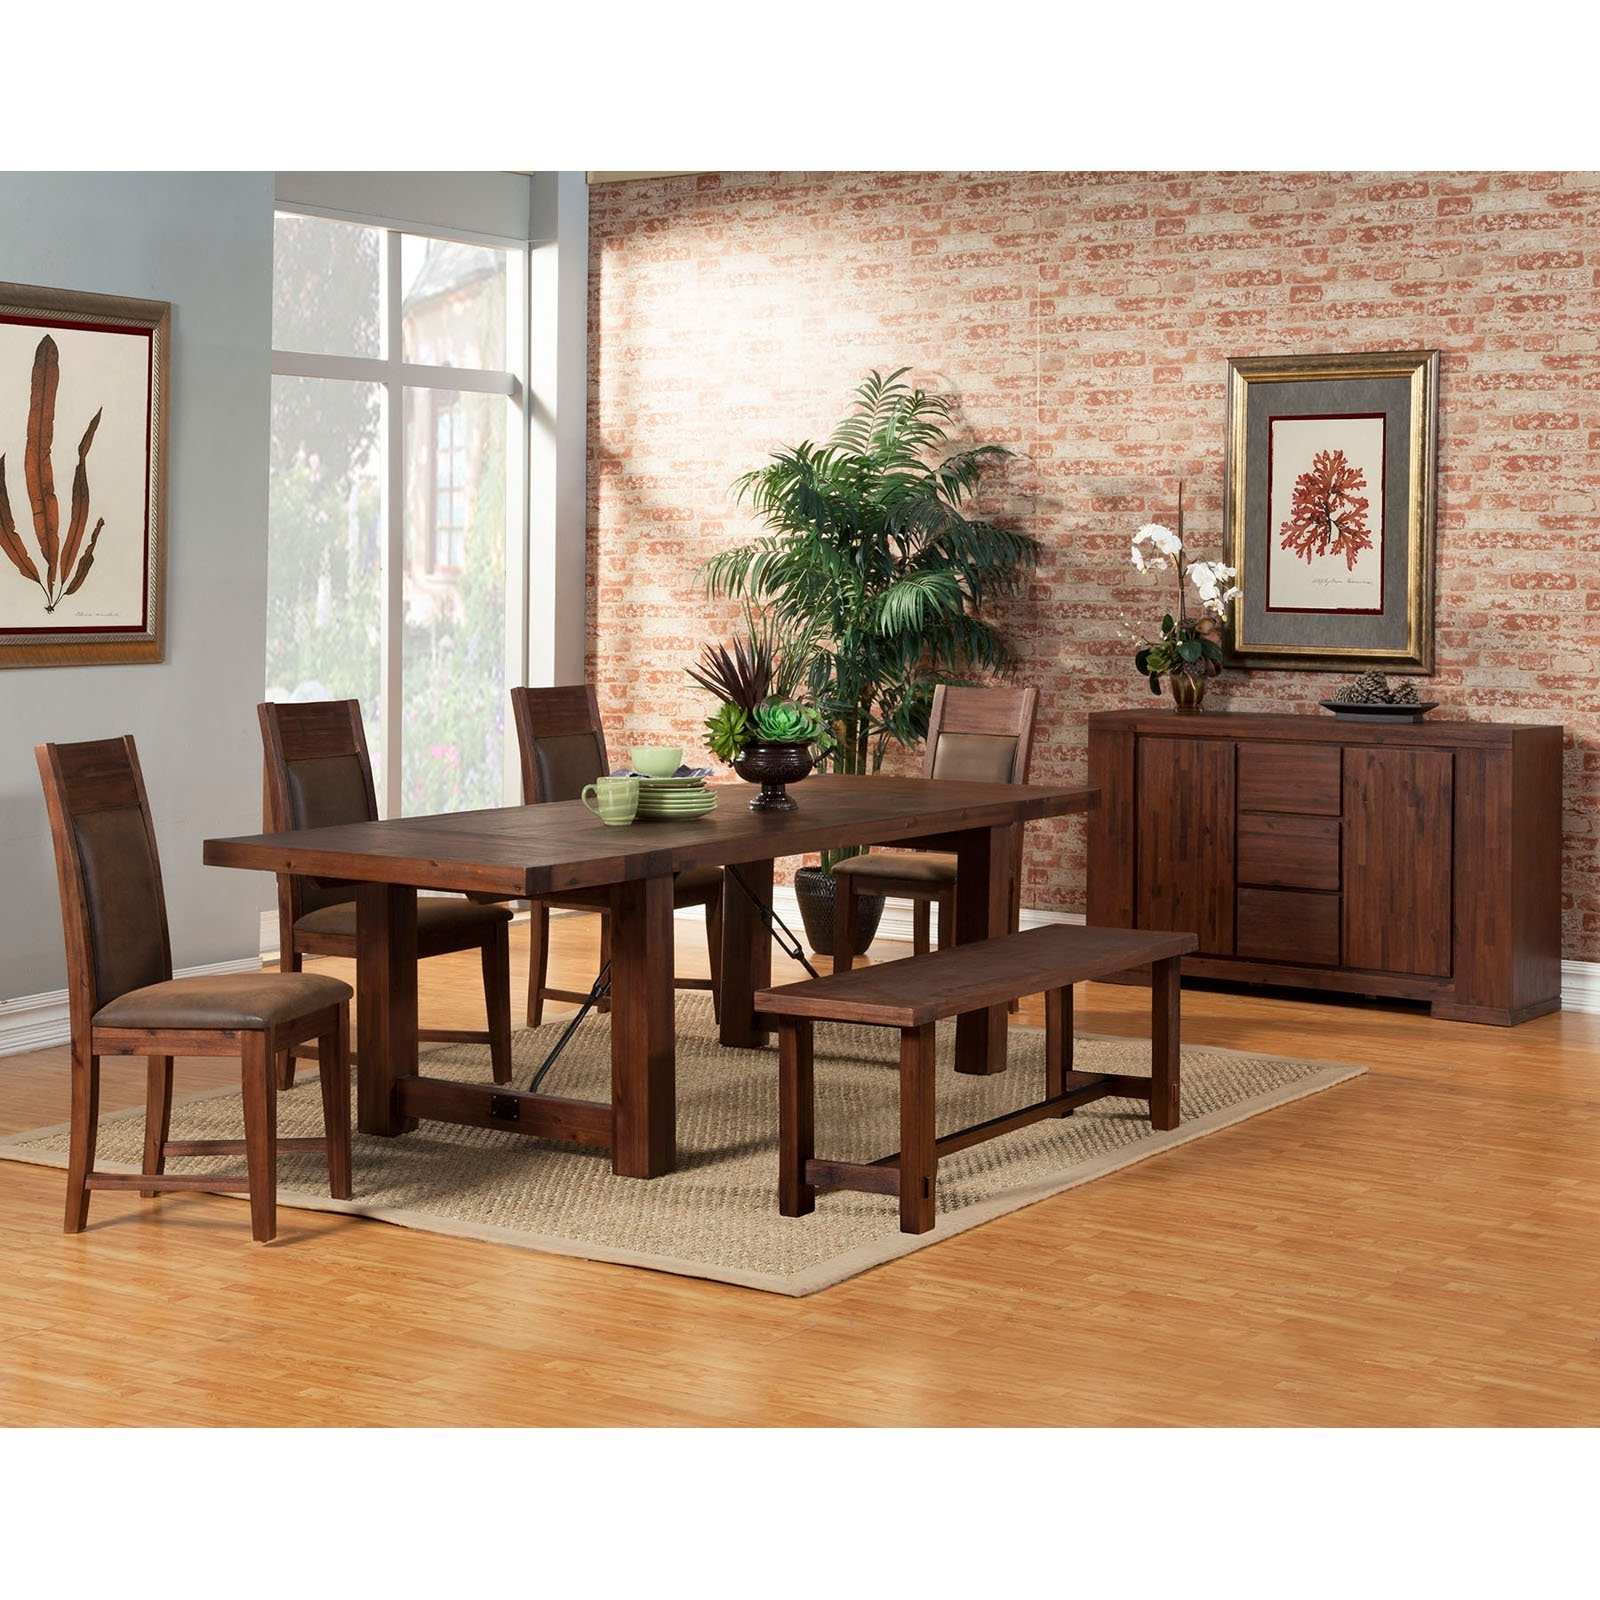 Alpine Furniture Granada 7 Piece Dining Table Set | Hayneedle Intended For Most Recently Released Cora 7 Piece Dining Sets (Image 4 of 20)